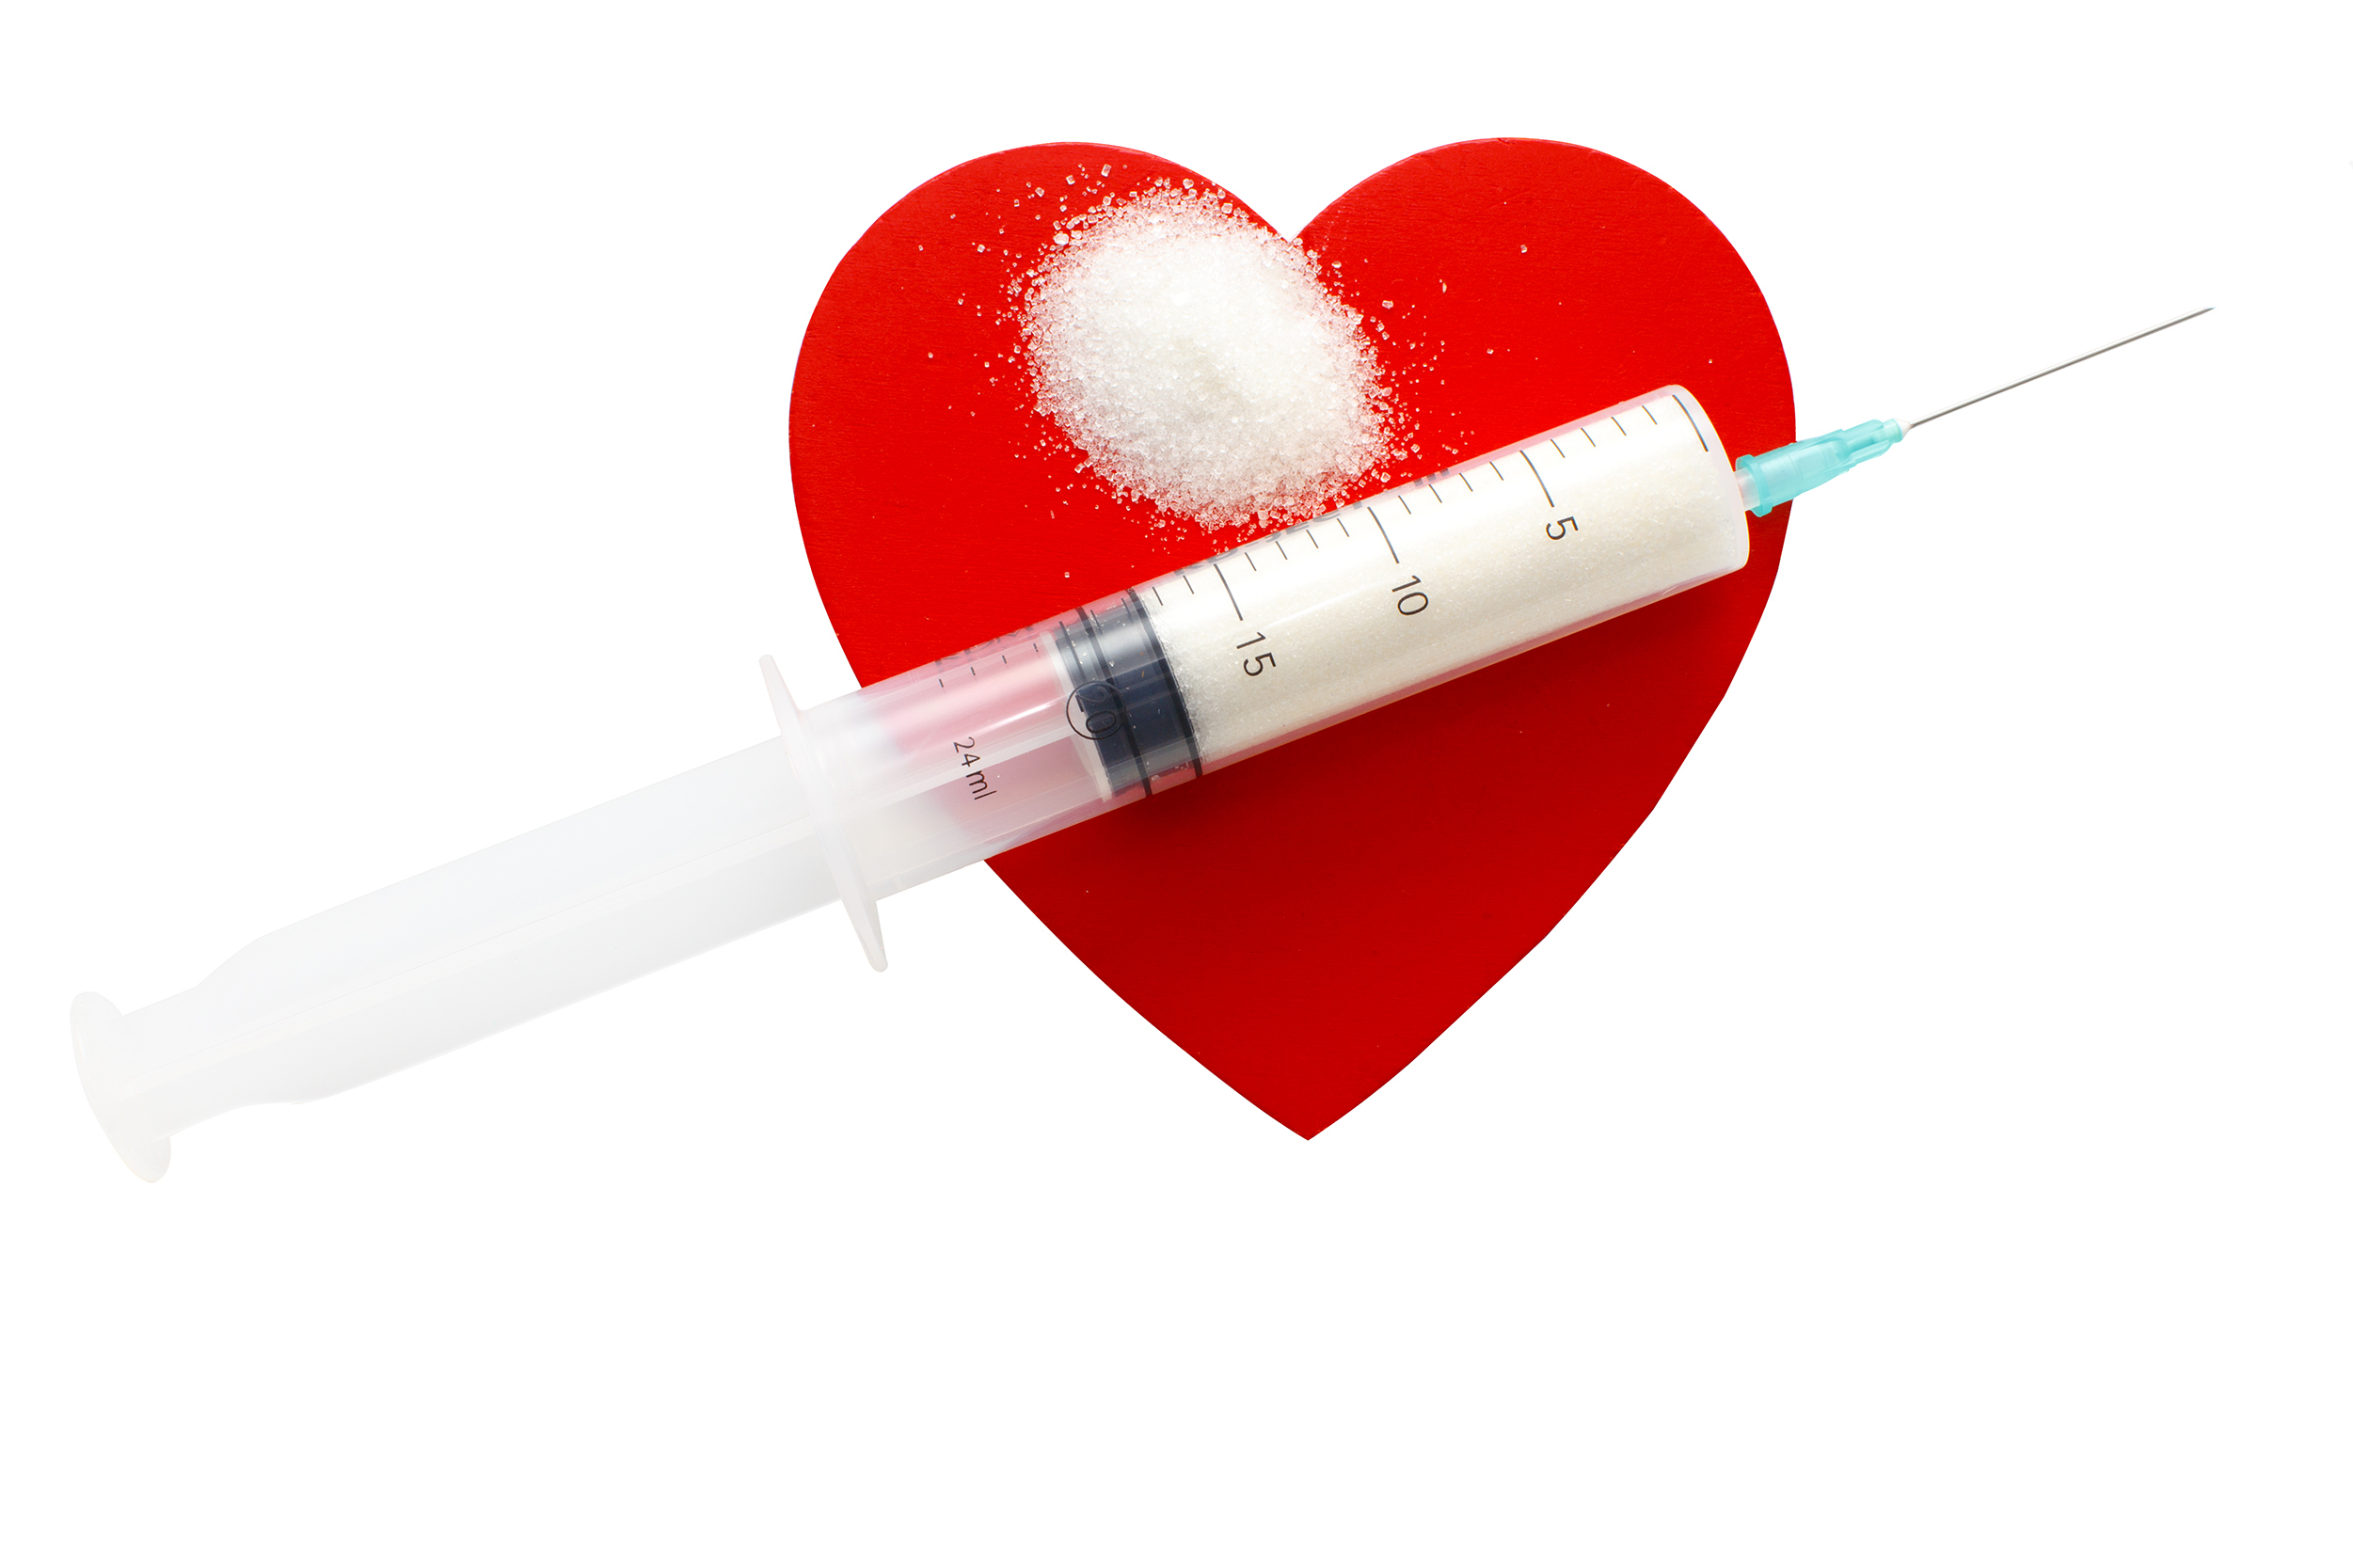 A syringe with sugar set on a heart, depicting diabetes and heart disease. (iStock Image)